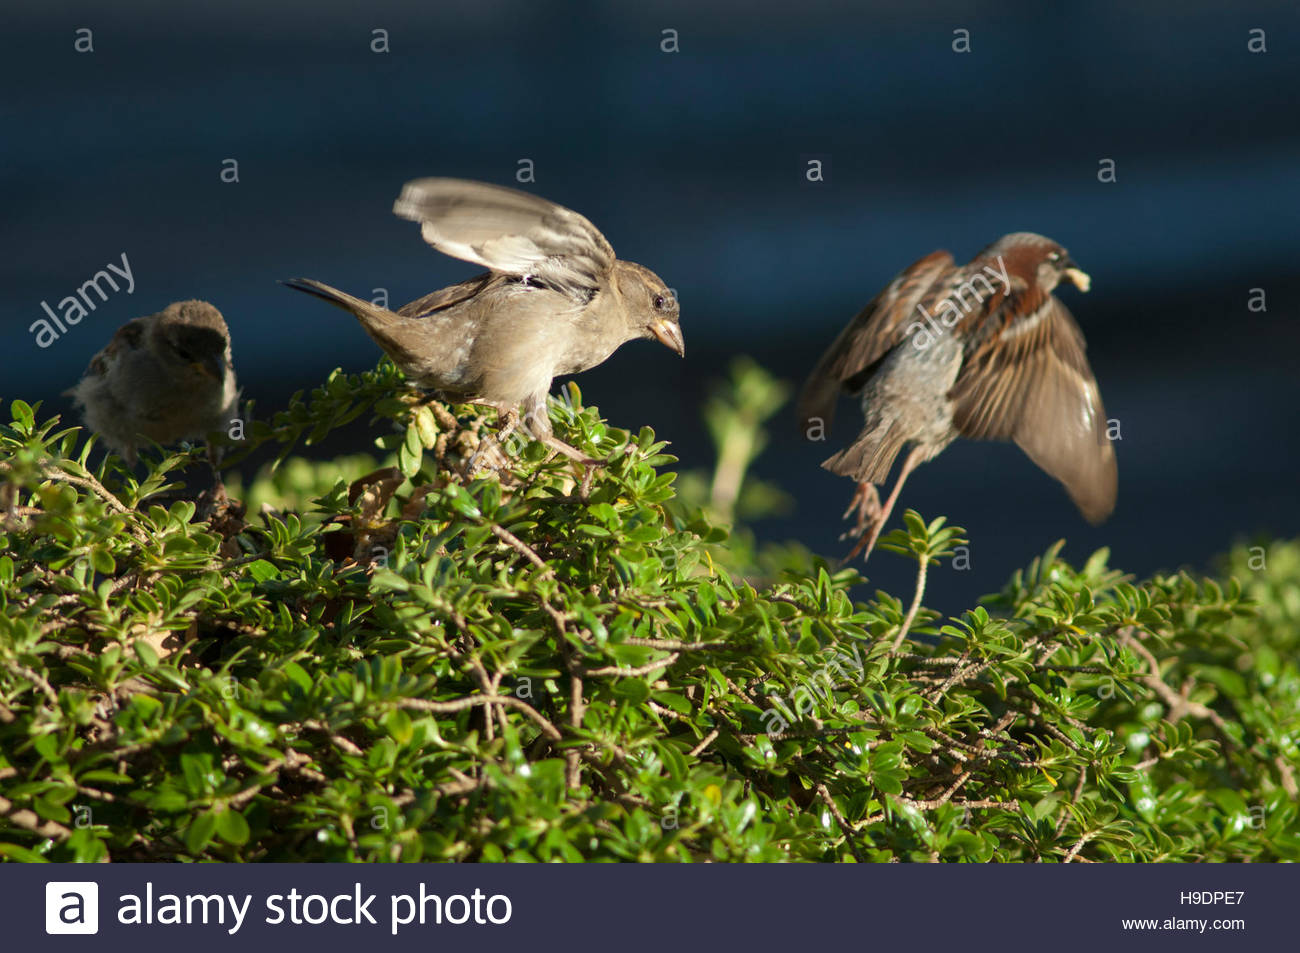 House sparrows (Passer domesticus). Female in the foreground. Auckland. North Island. New Zealand. Stock Photo